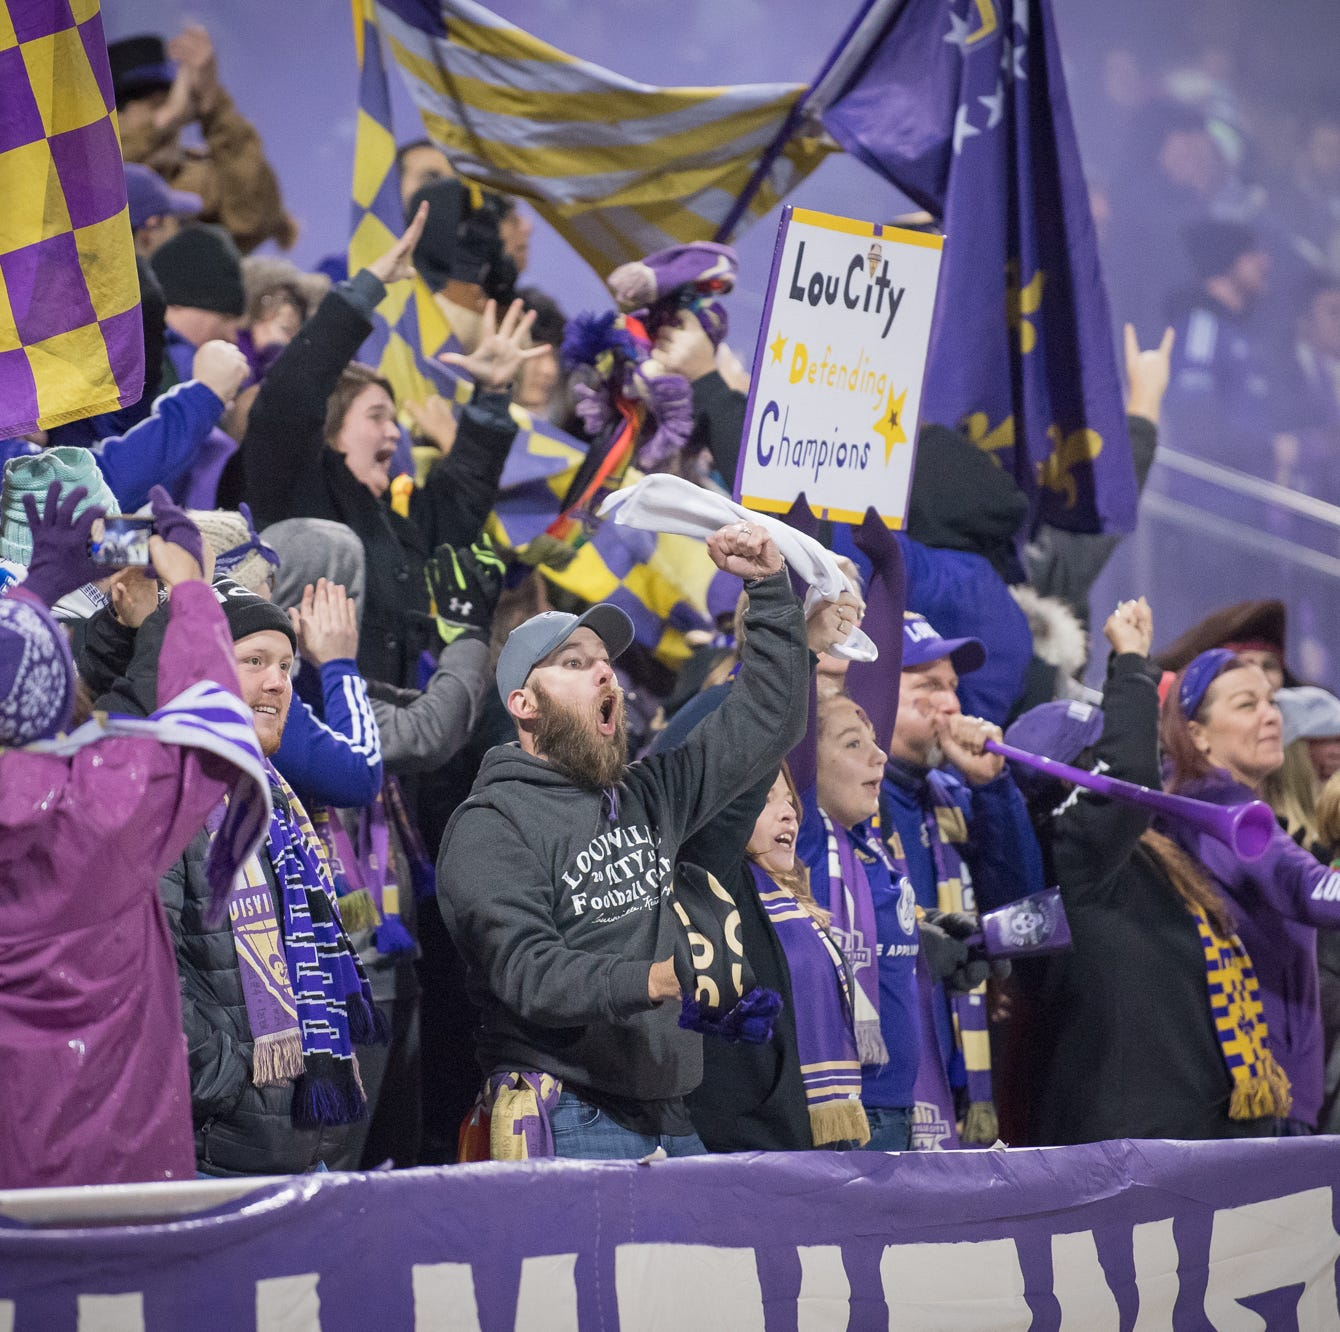 Are you ready to celebrate? Here's when you can party with LouCity